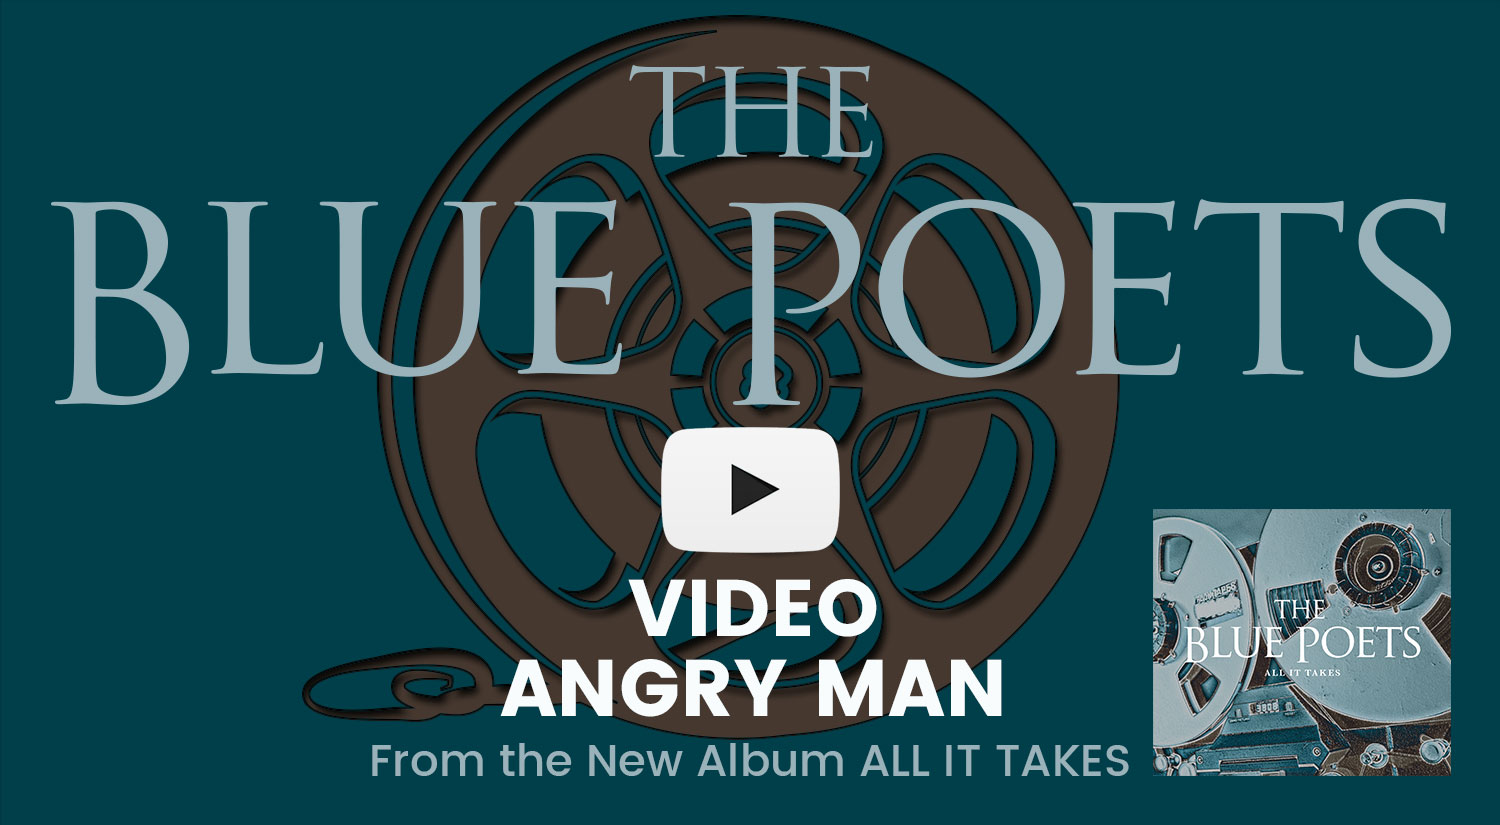 New Video - Angry Man